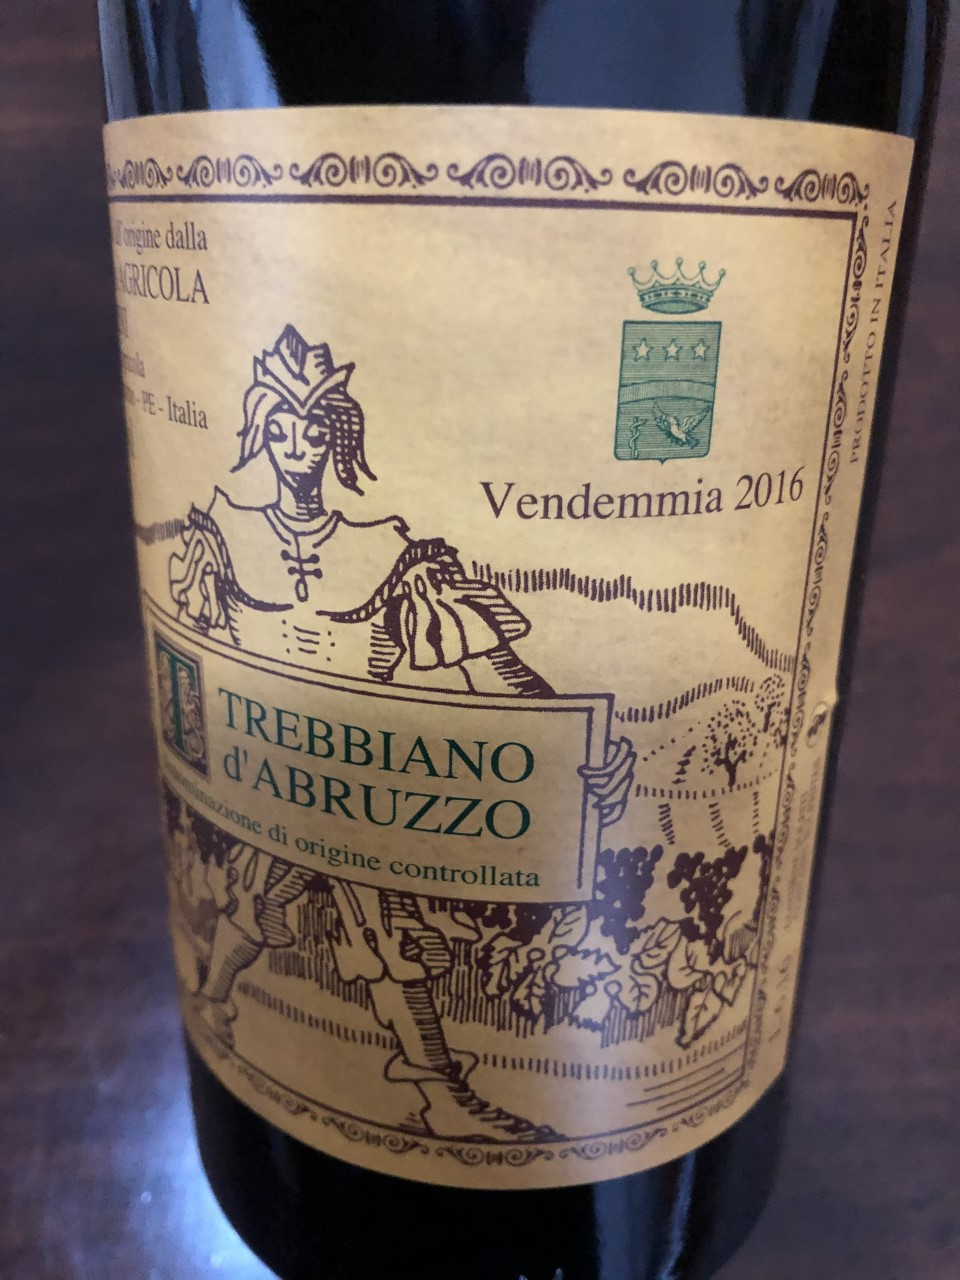 Valentini-once-again-made-a-stellar-Trebbiano-dAbruzzo-wine-oneof-Italys-longest-lived-white-wines-1-2-1-1-1-1-1